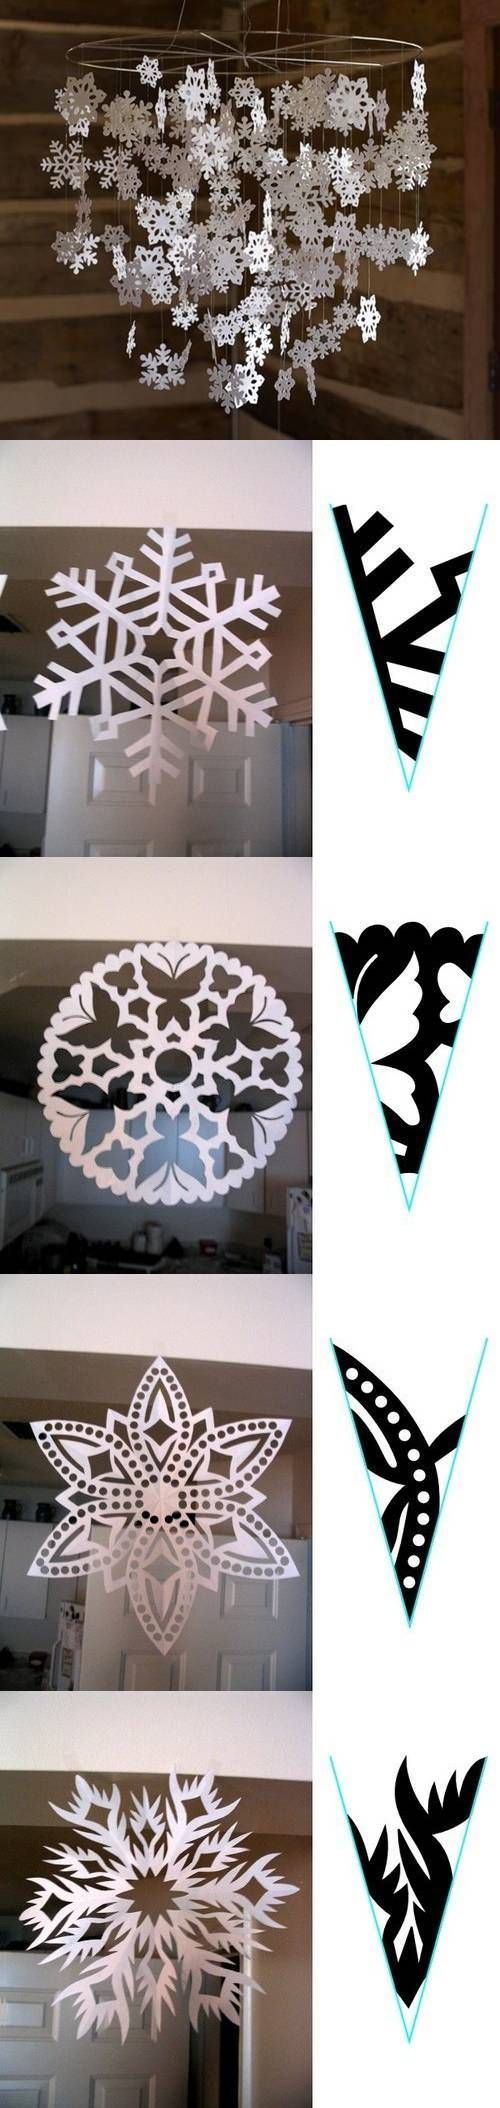 Paper Snowflakes Projects To Try Pinterest Paper Patterns